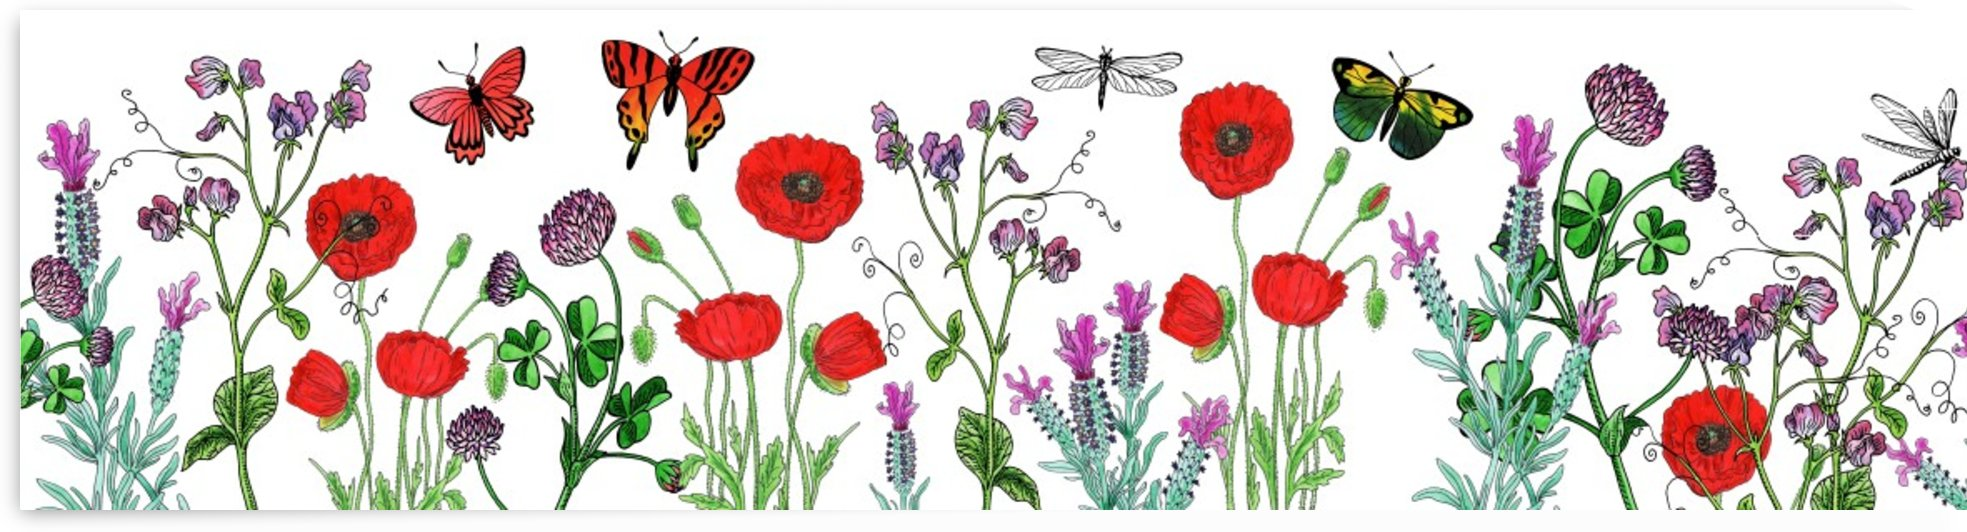 Wildflowers Field With Red Poppies Clover Lavender And Butterflies by Irina Sztukowski